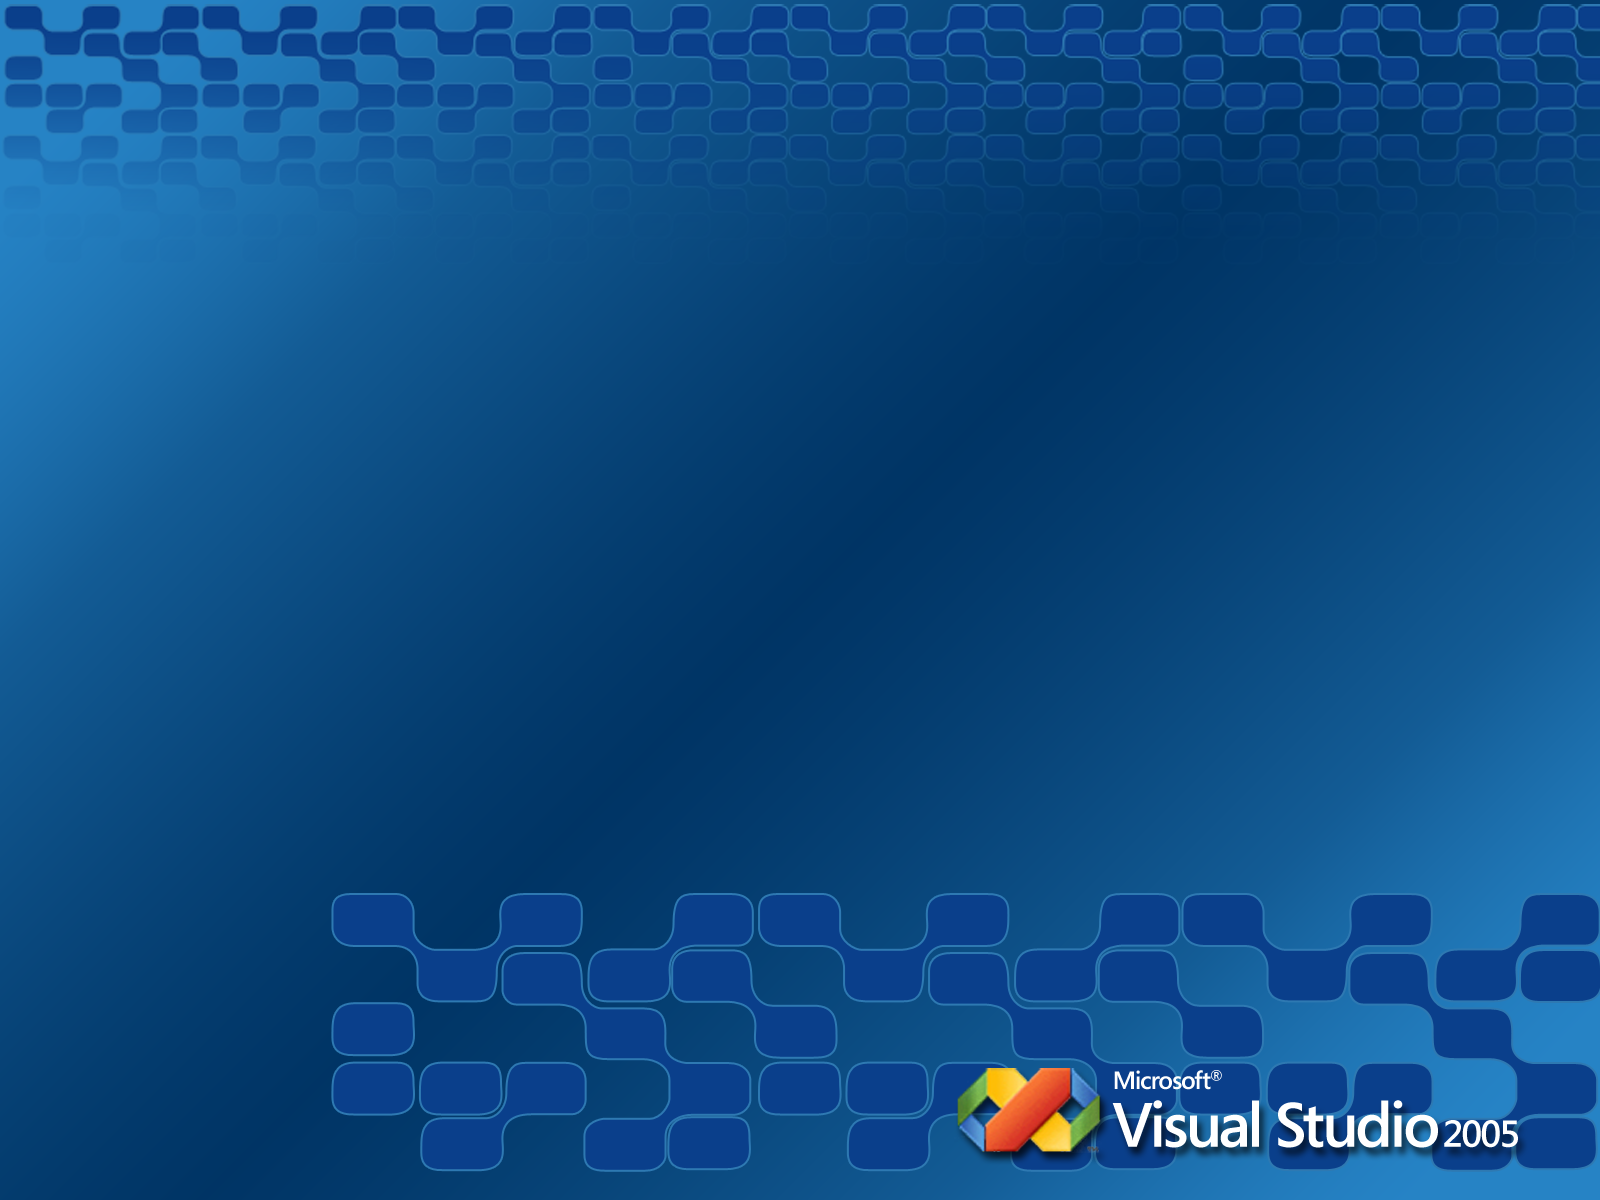 Visual Studio 2005 Wallpaper VS Thumbnail 1680 X 1050 1600 1200